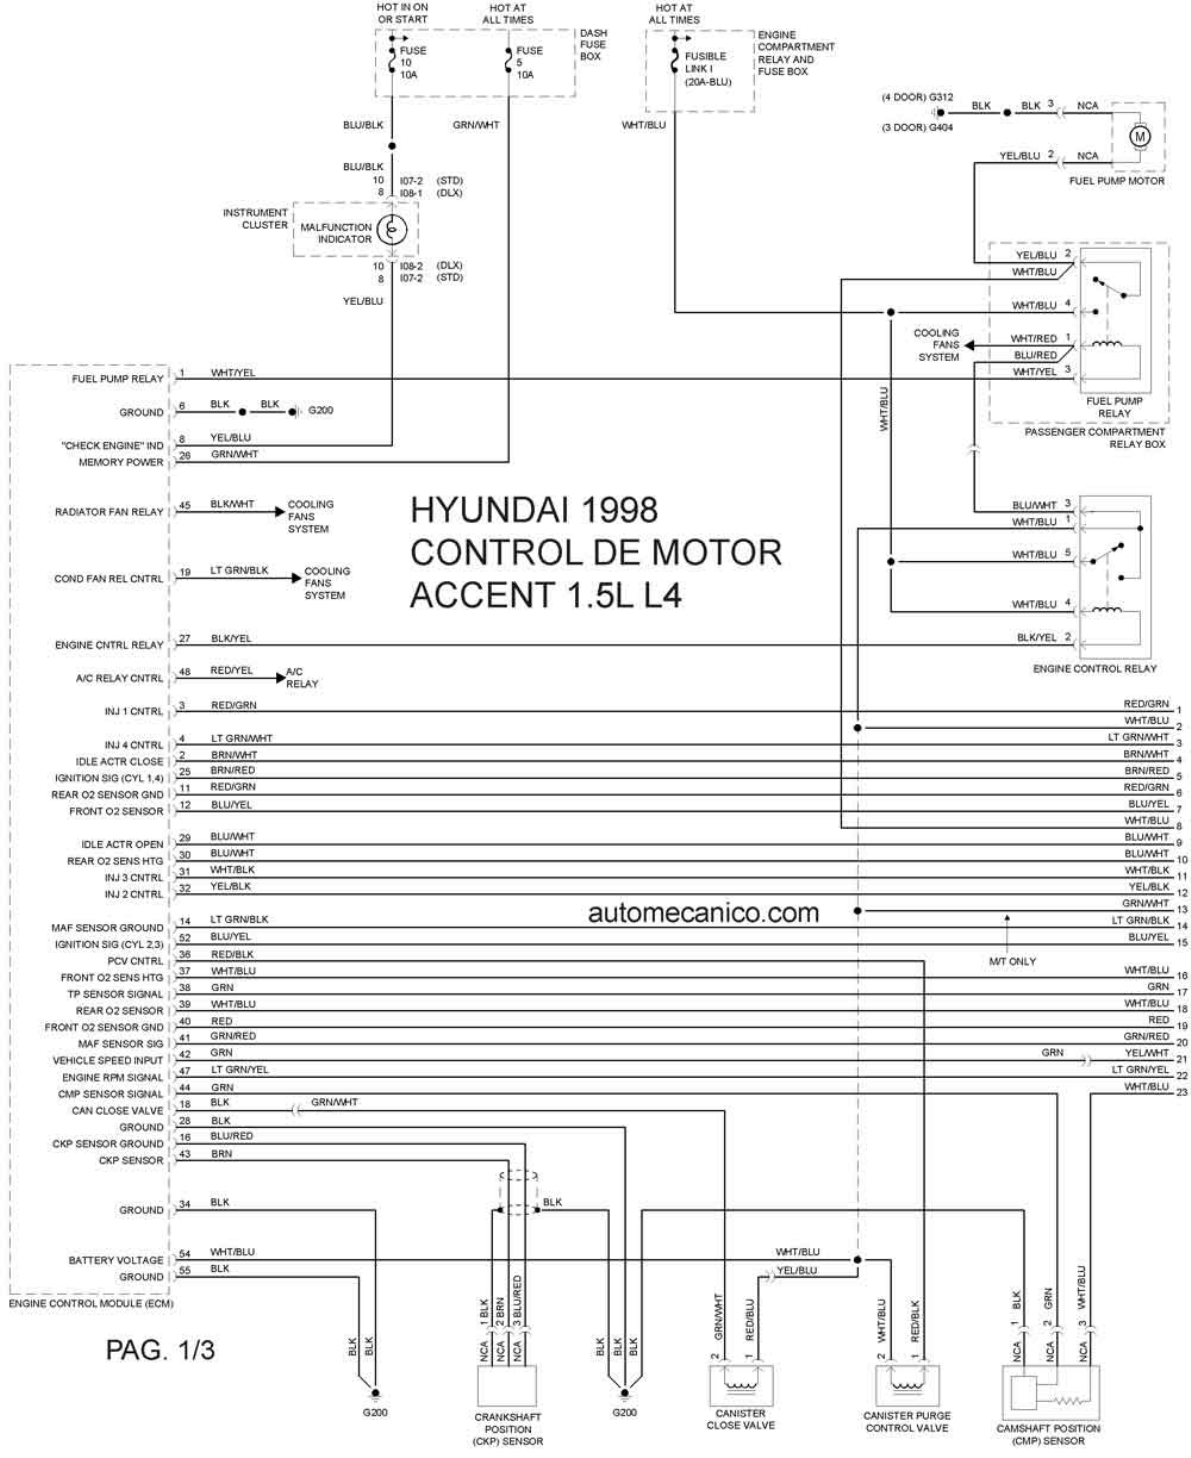 Hyundai Accent 1998 Misc Document Wiring Diagram Pdf R230 Mercedes Fuse  Diagram Fuse Diagram 2007 Accent